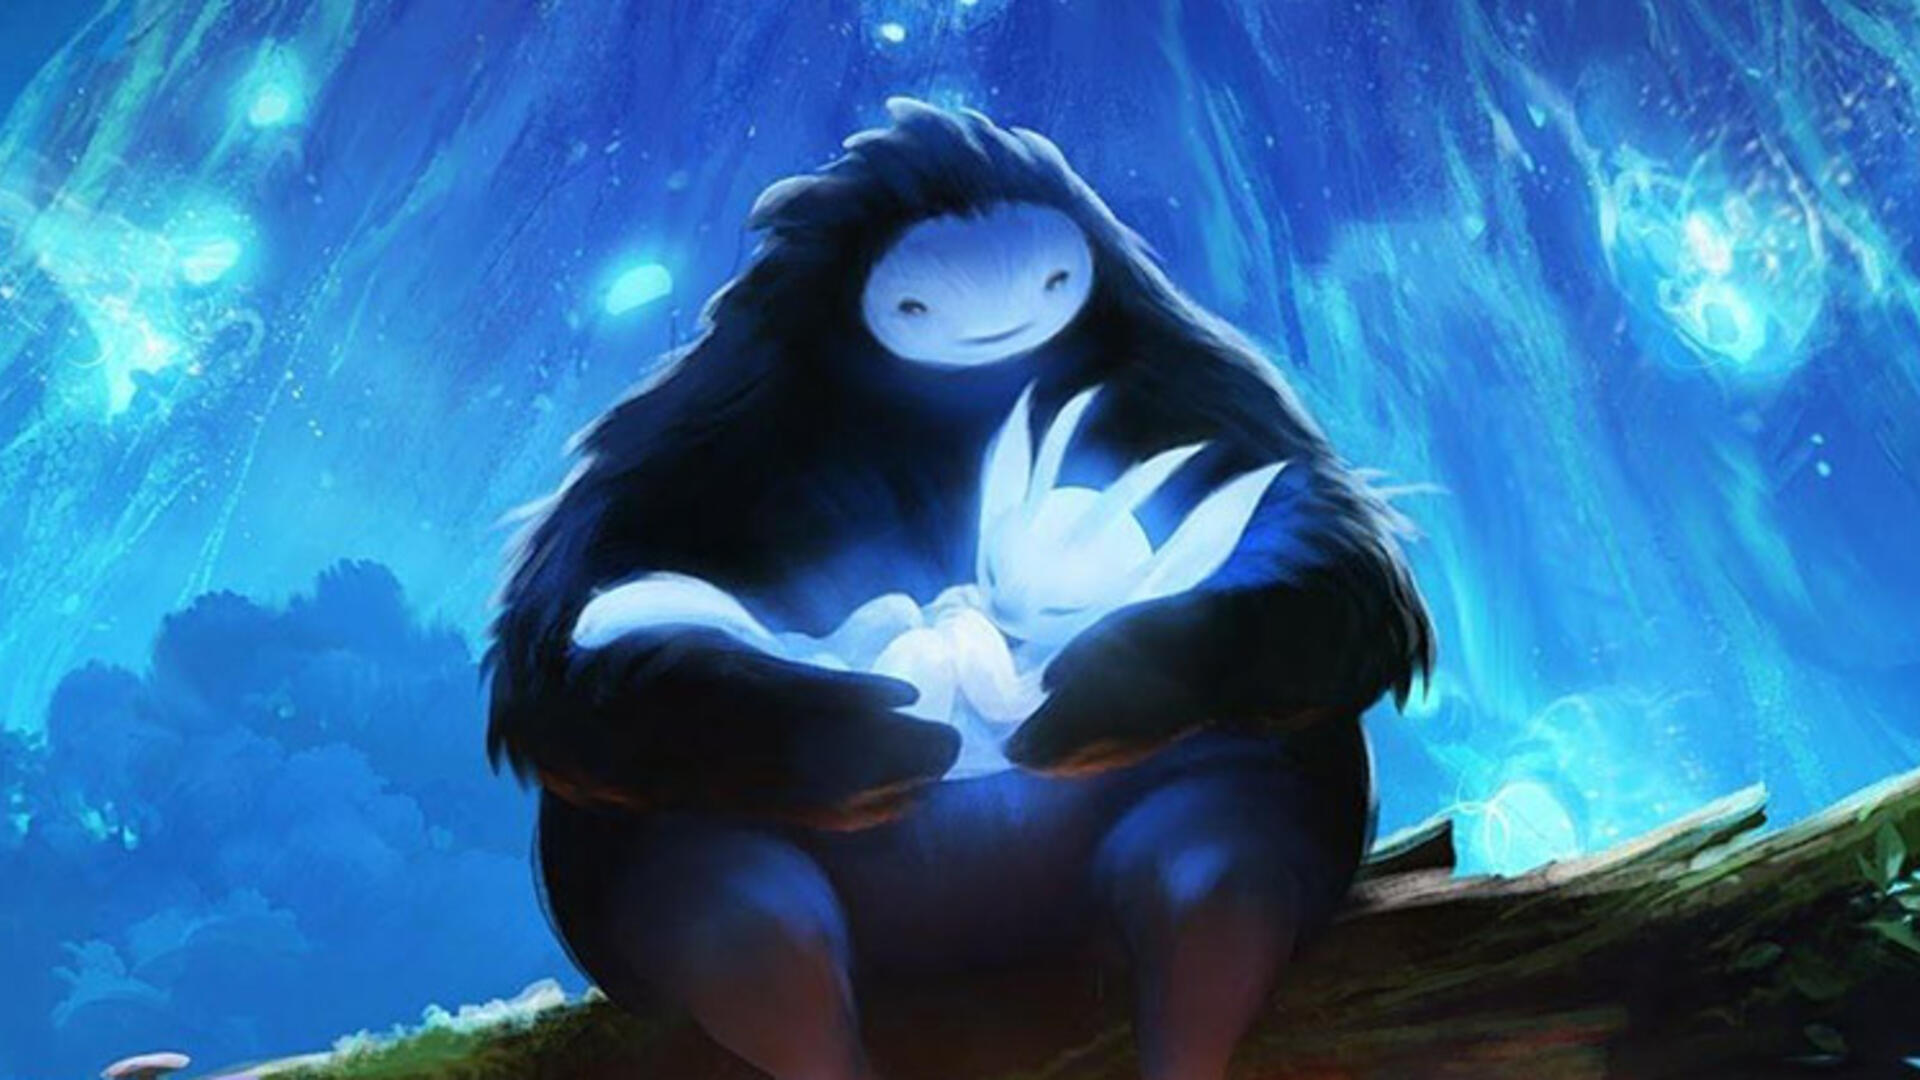 Ori and the Blind Forest Review: Beauty is Cruelty